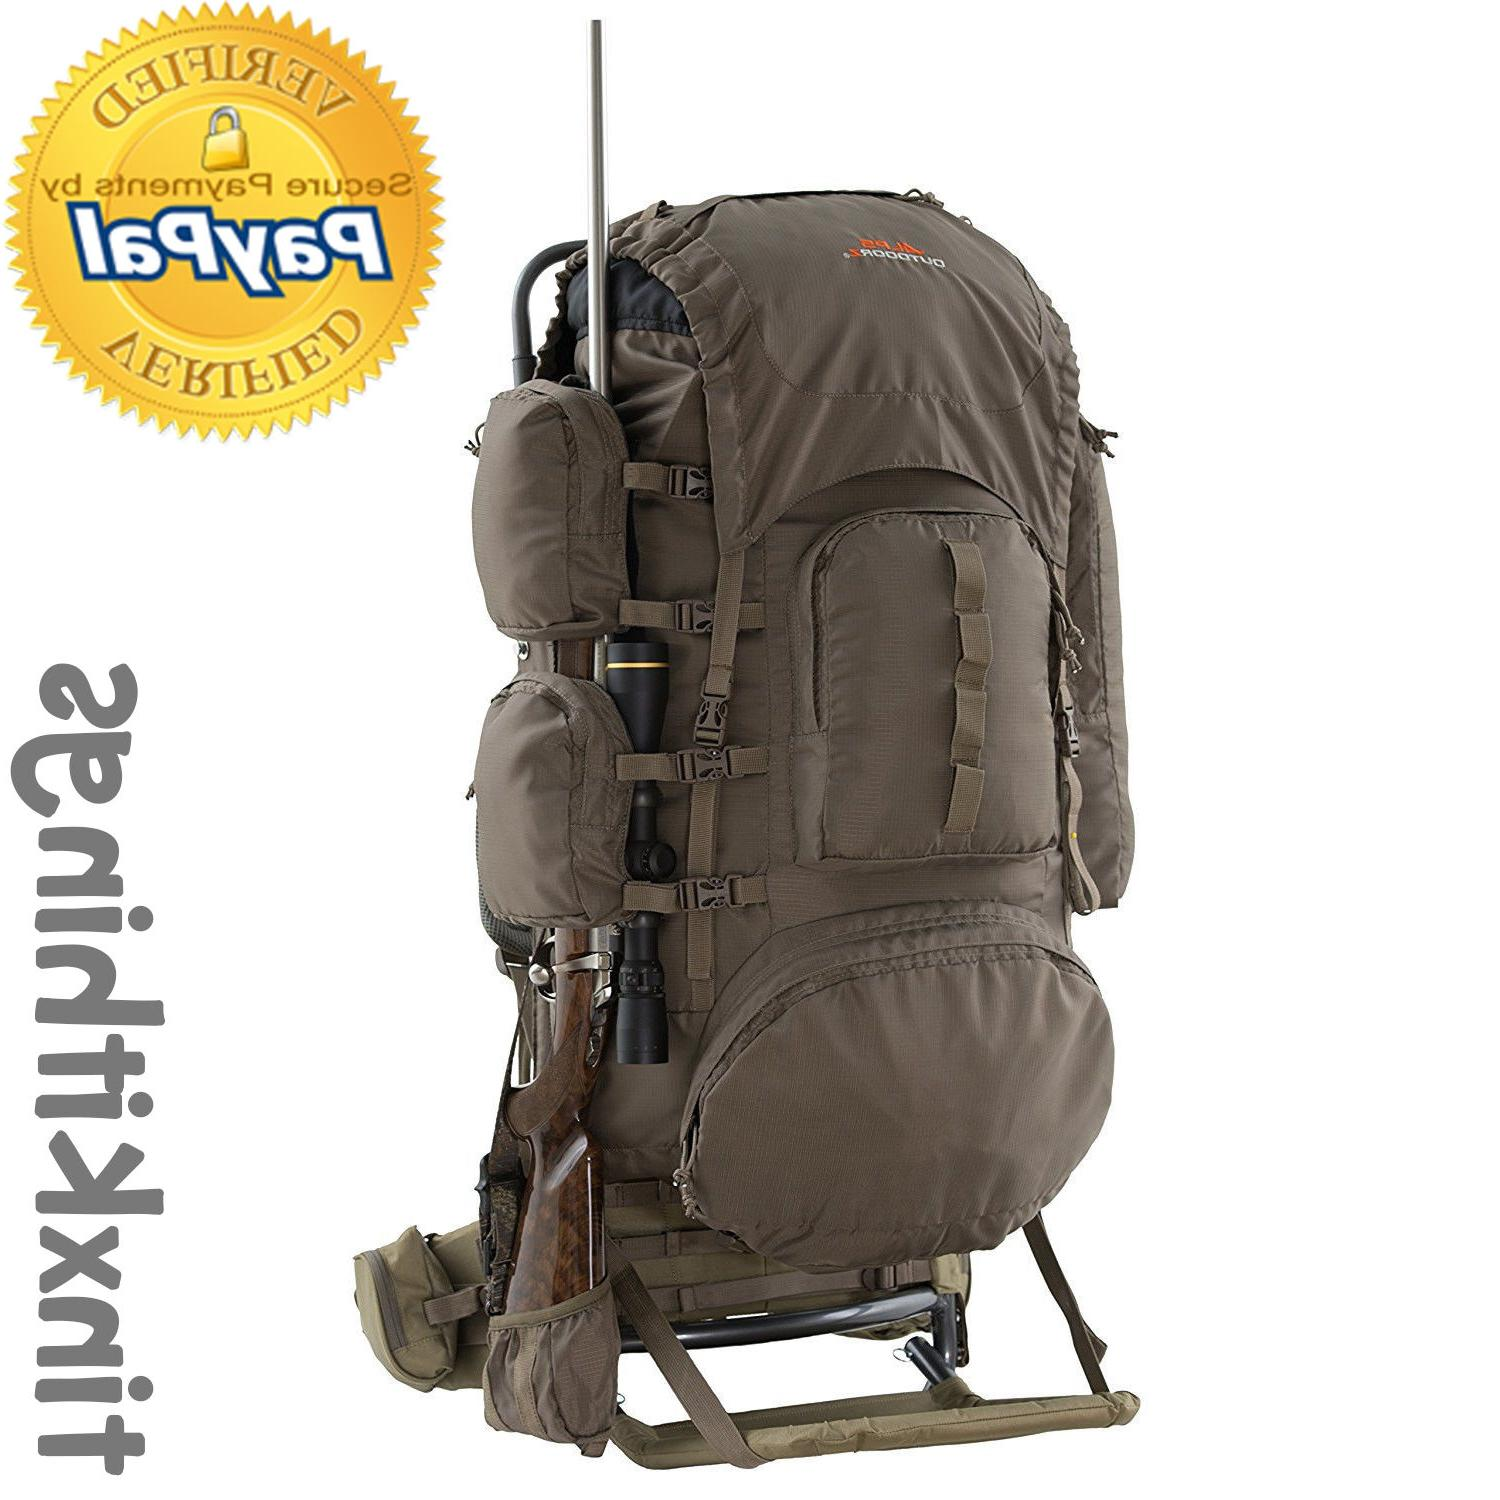 Freighter Frame Back Gear Hydration Pocket Camping Hunting